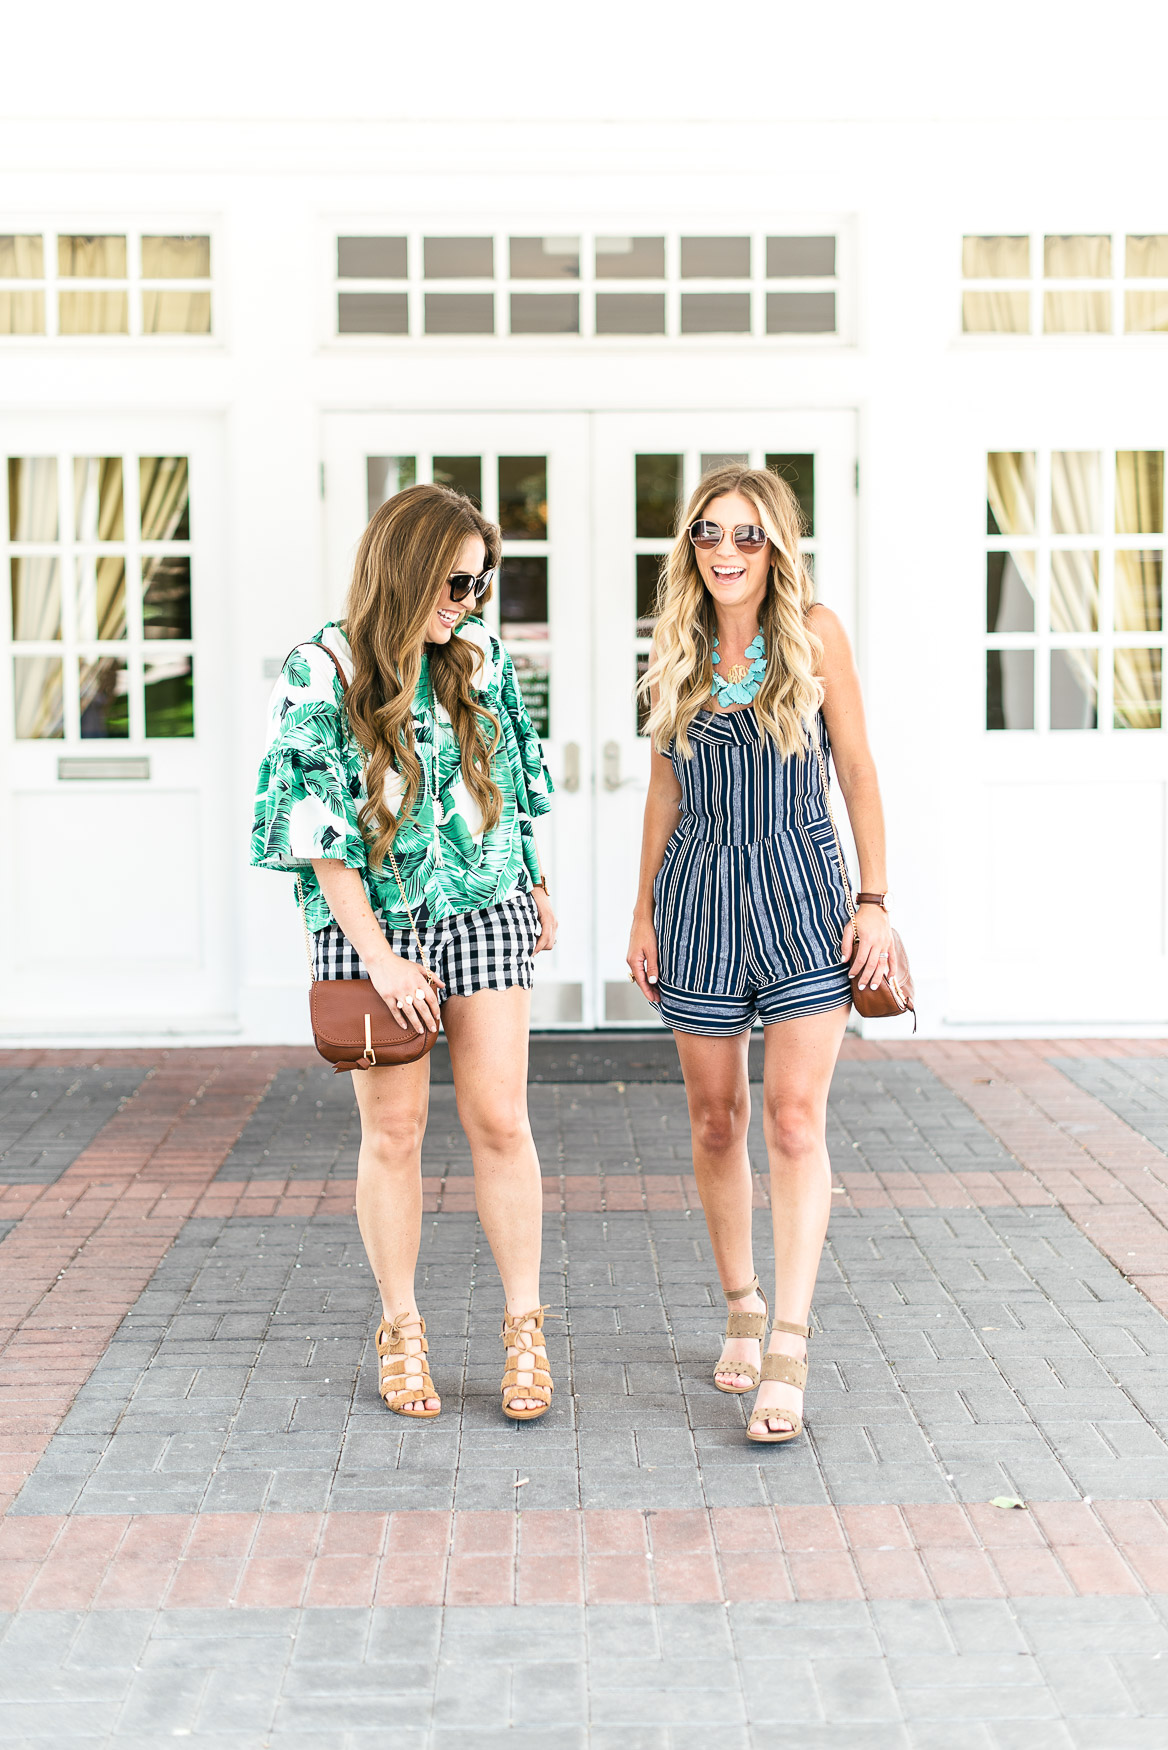 summer outfits for lunch with friends vera bradley kendra scott